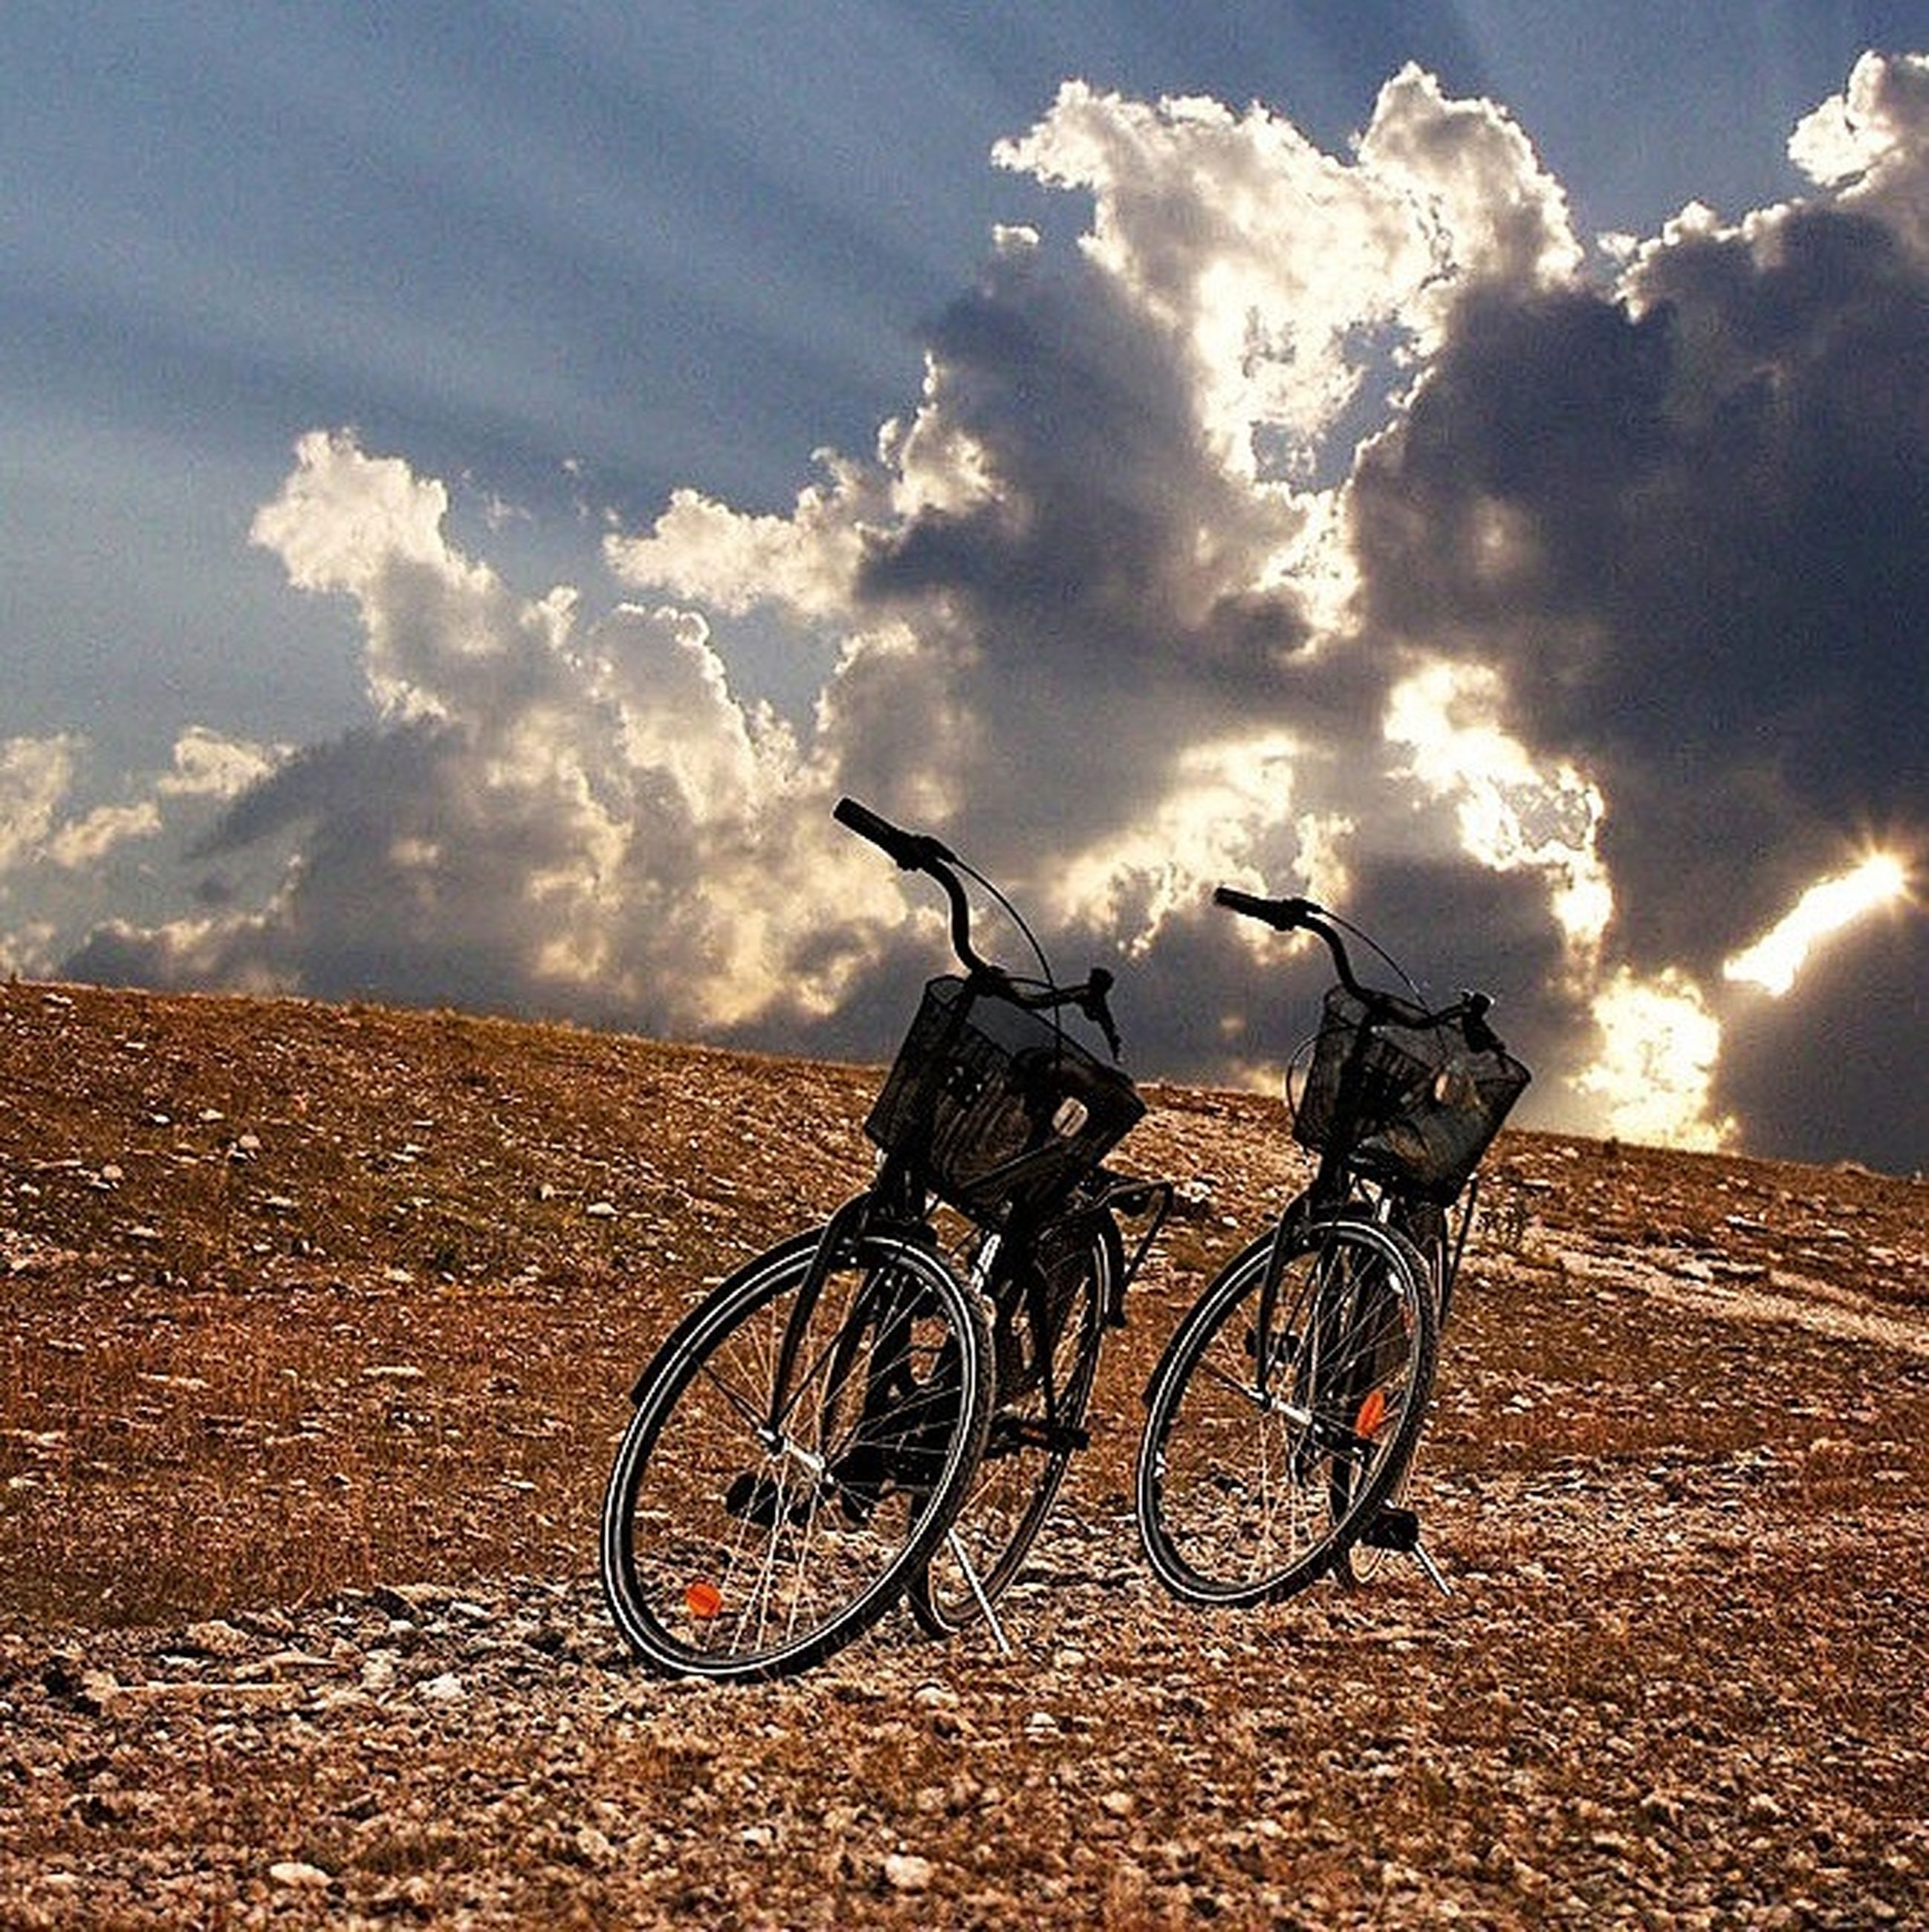 bicycle, transportation, sky, land vehicle, mode of transport, stationary, parked, cloud - sky, parking, landscape, wheel, tranquility, day, outdoors, cloud, nature, cloudy, tranquil scene, no people, field